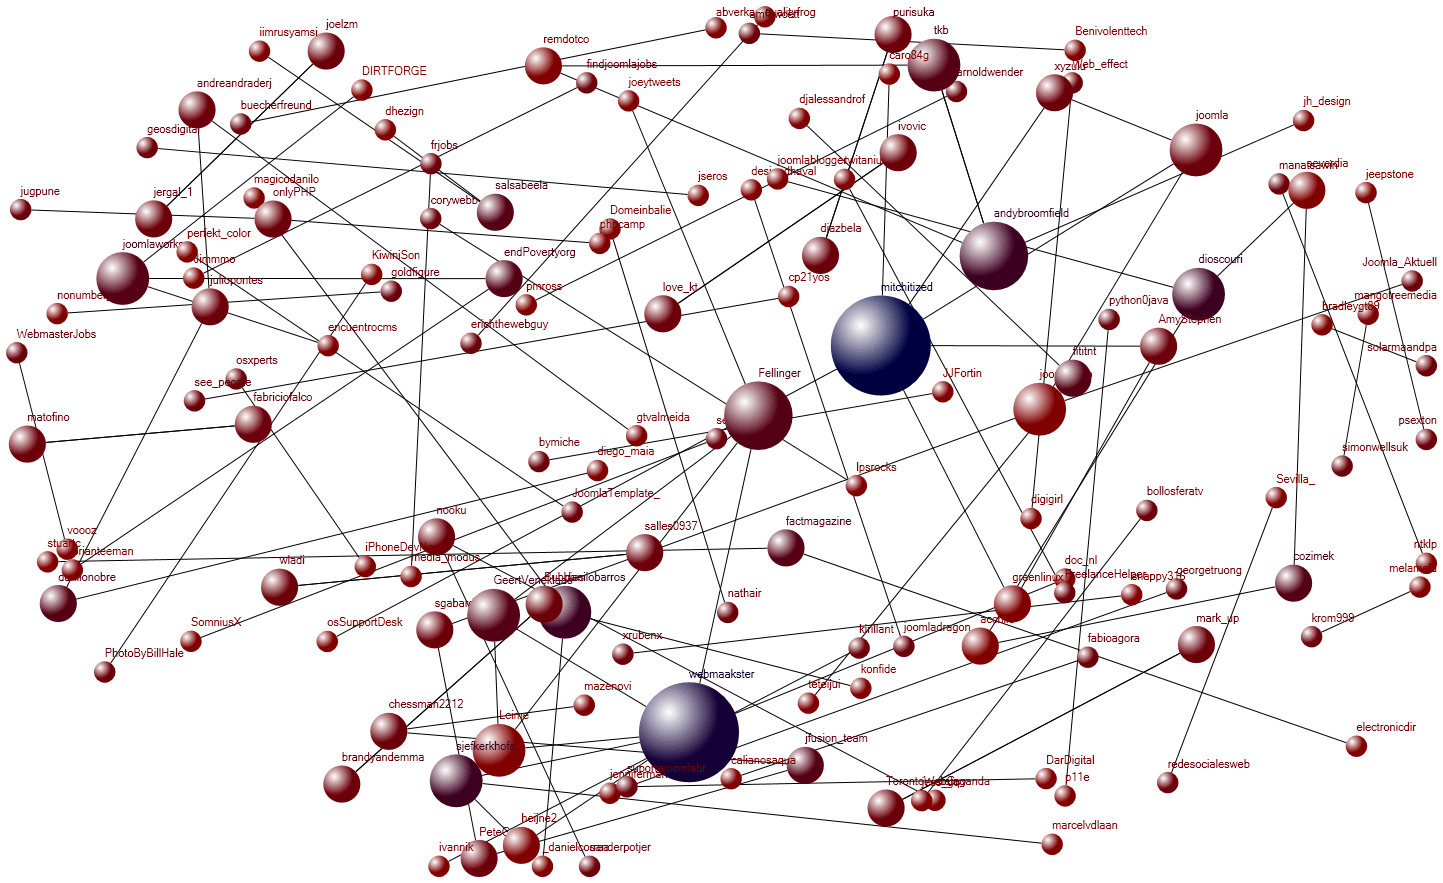 Nodexl social network visualization example 5